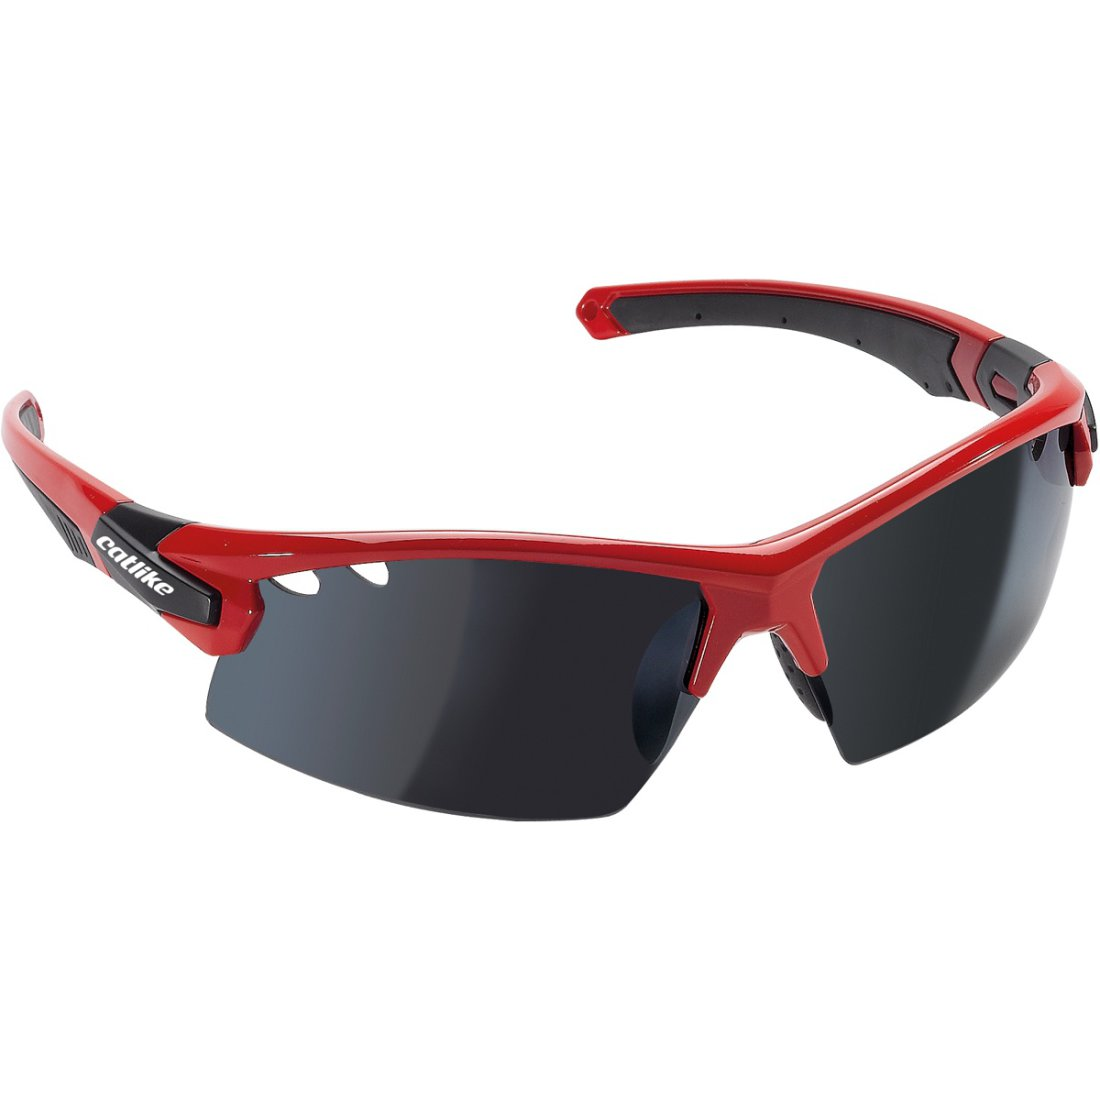 2bc7638a0c CATLIKE Exert Red Mask   Goggle · Motocard